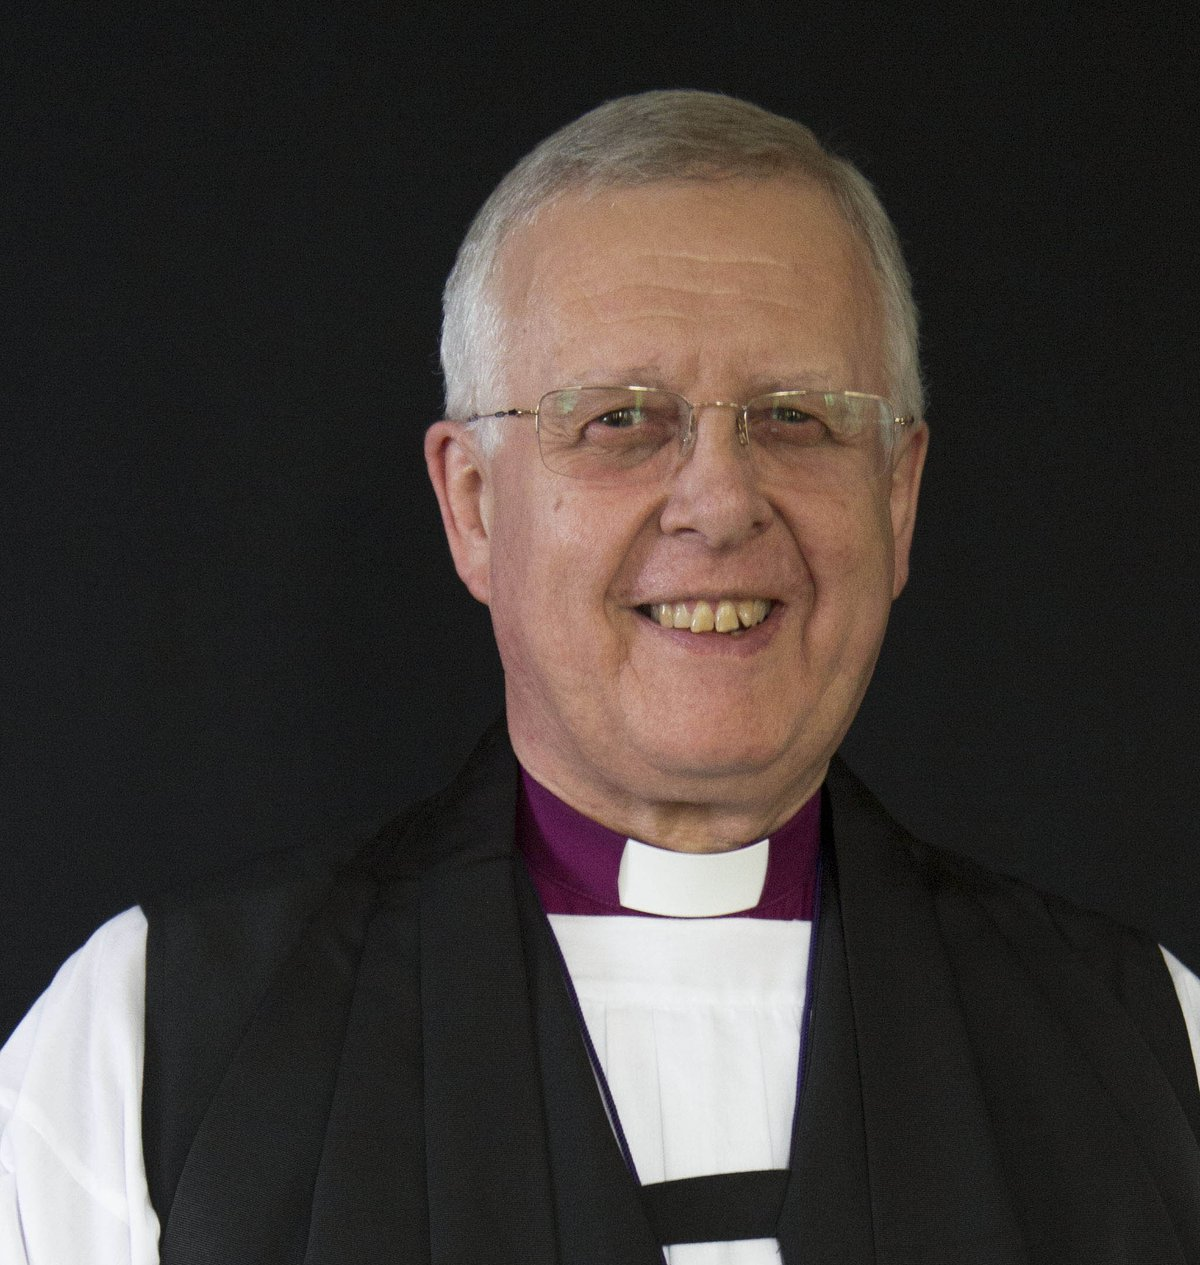 Rt Revd Donald Allister